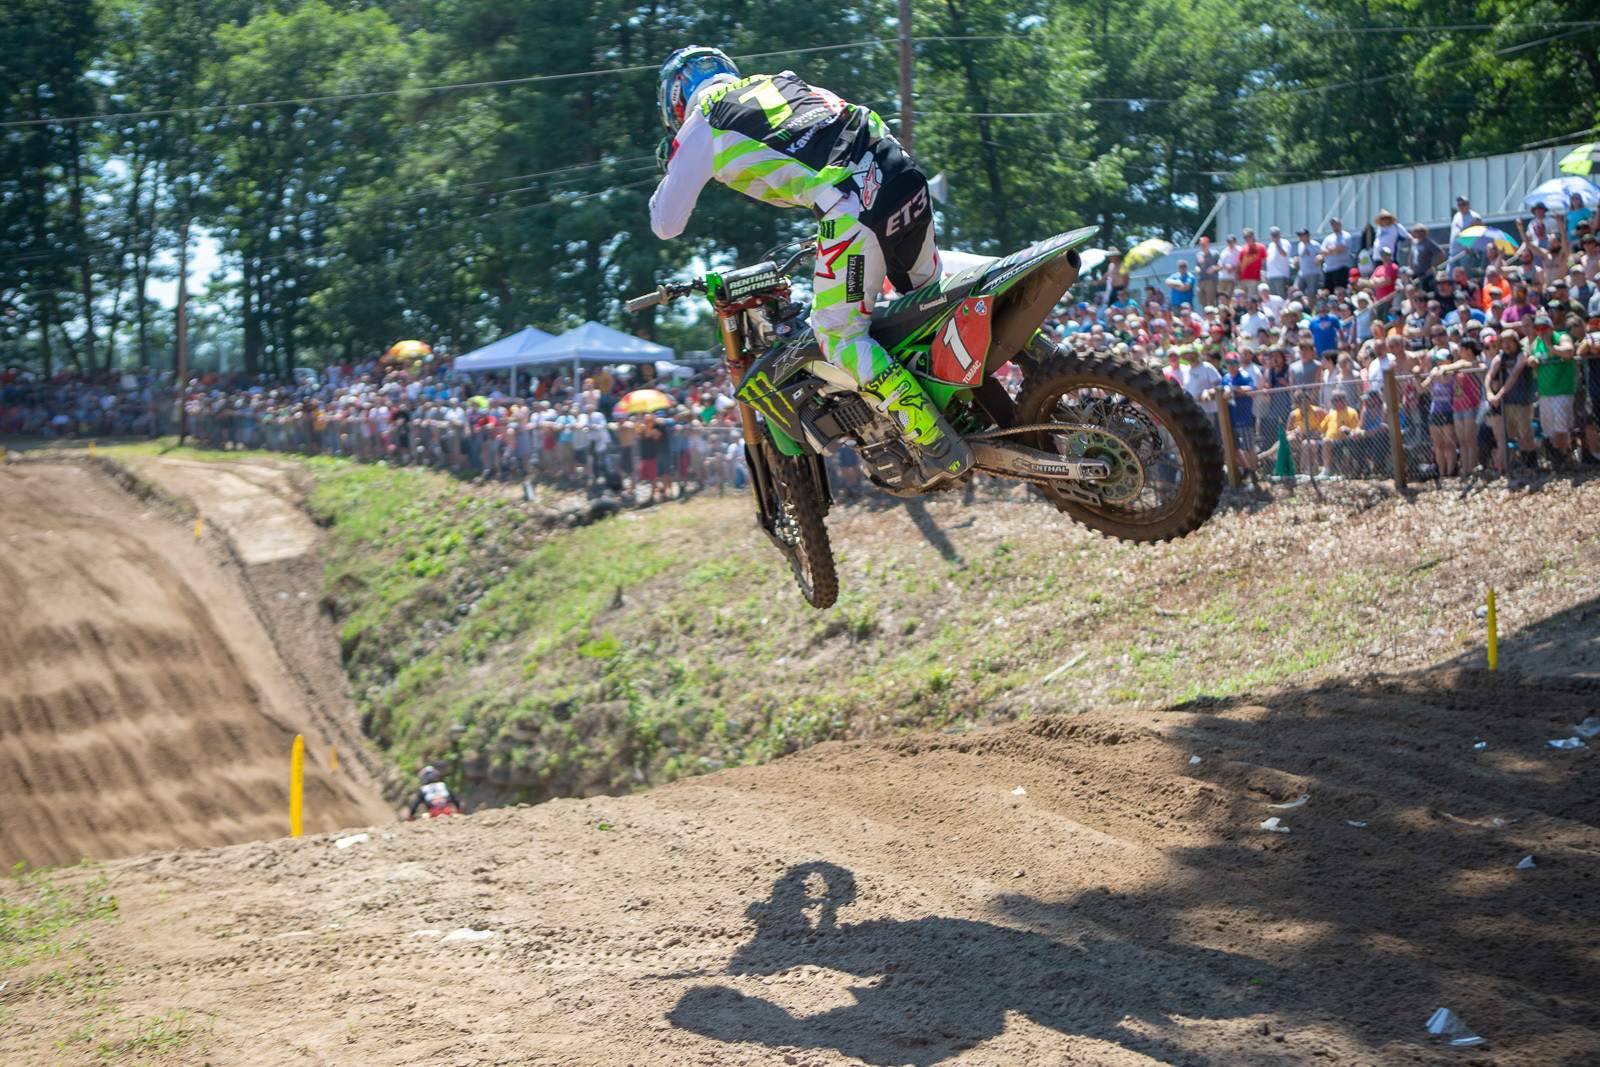 Eli Tomac was on a mission to work his way to the front. He got there...with two laps to go. But it was a good battle between him and Marvin Musquin.